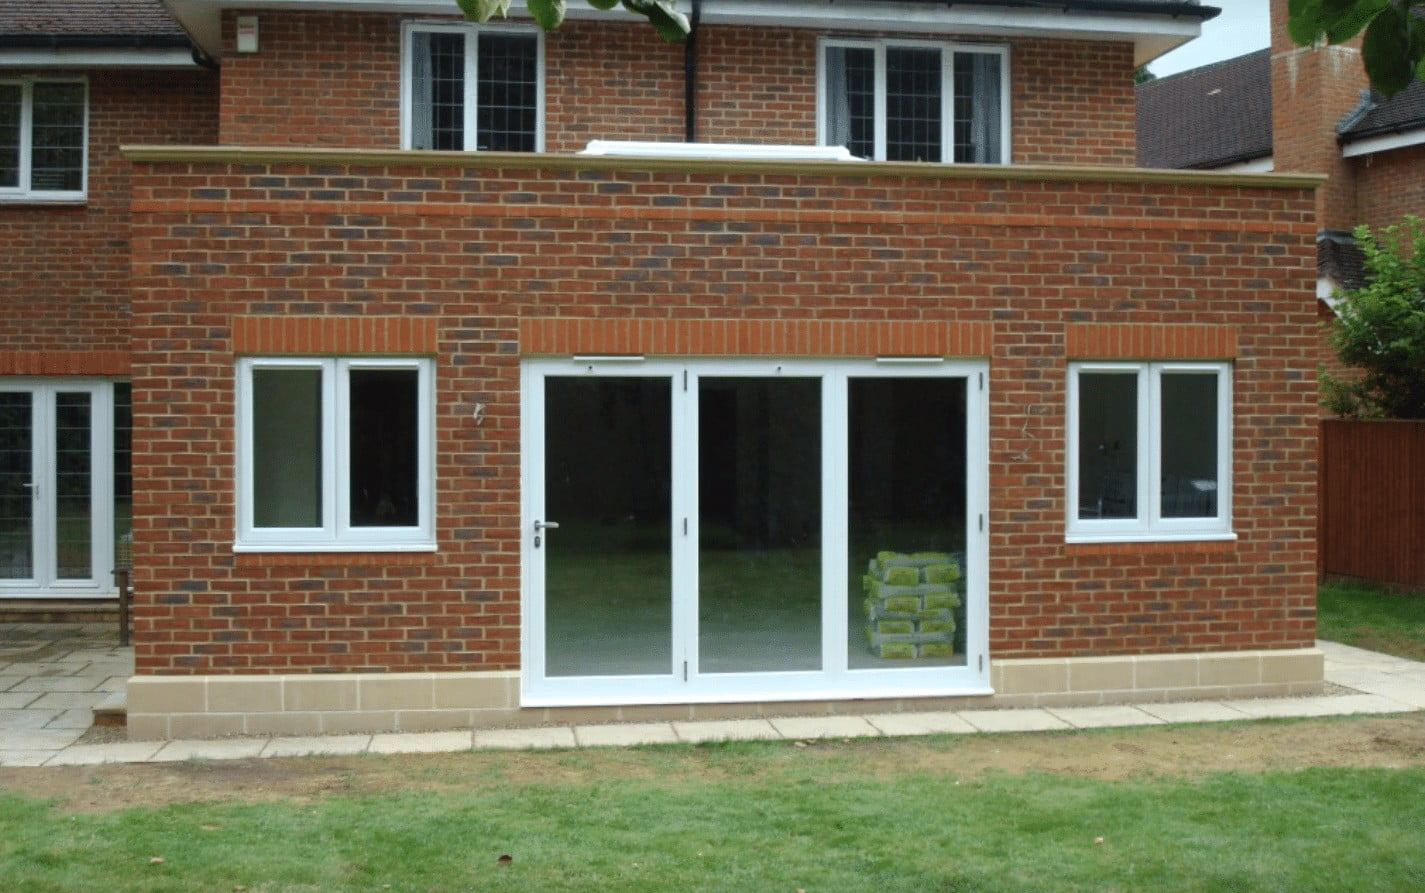 A SIPS Orangery extension project built using non-accredited system